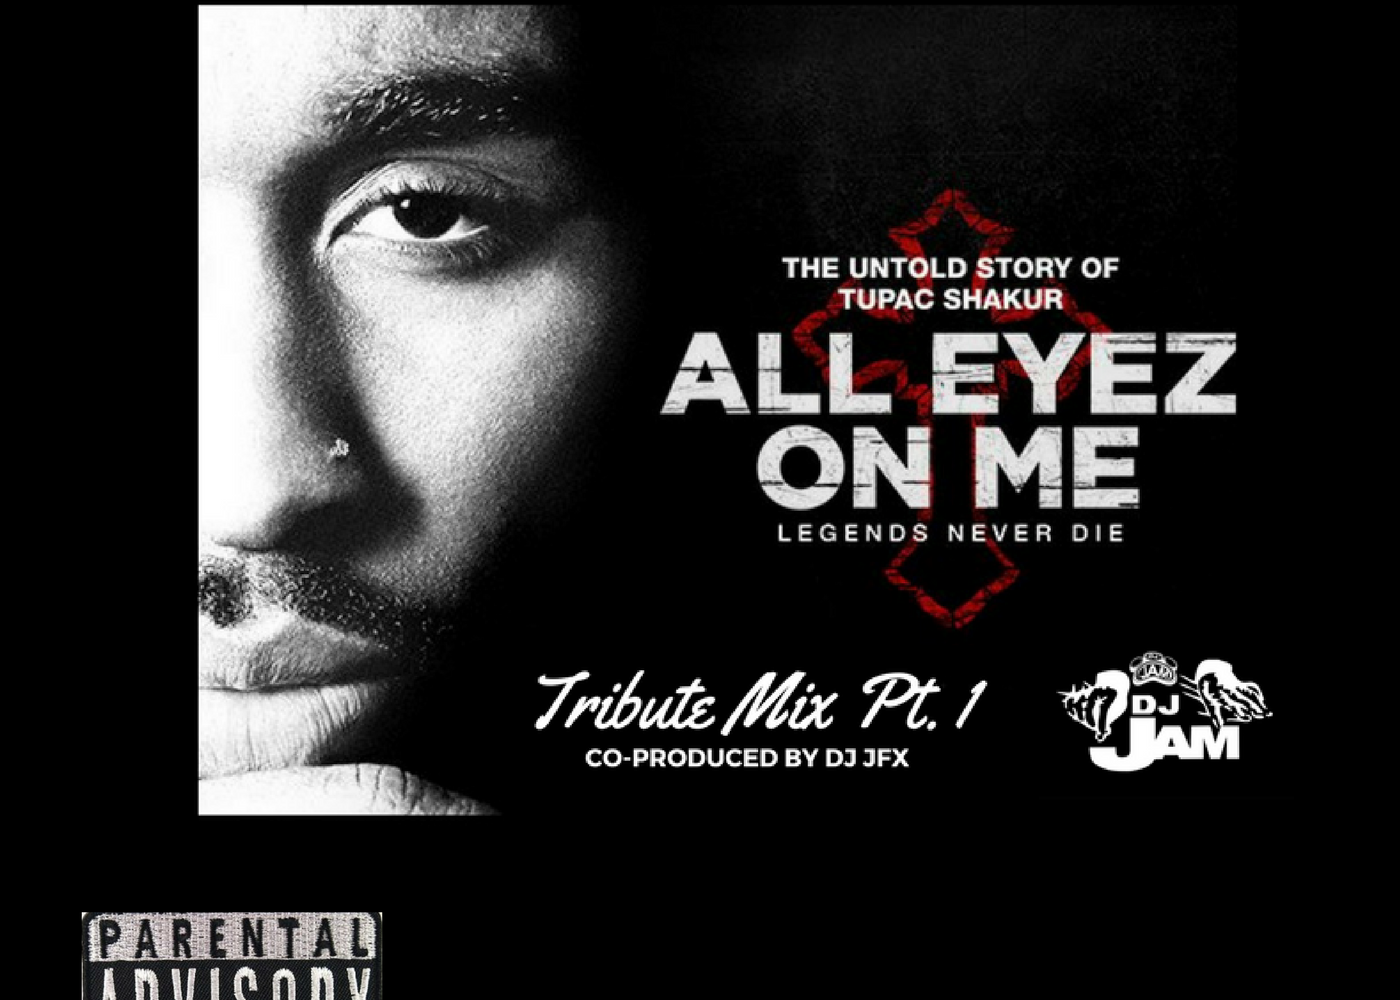 """2Pac """"All Eyez On Me"""" Tribute Mix PT. 1 Co produced by DJ JFX"""